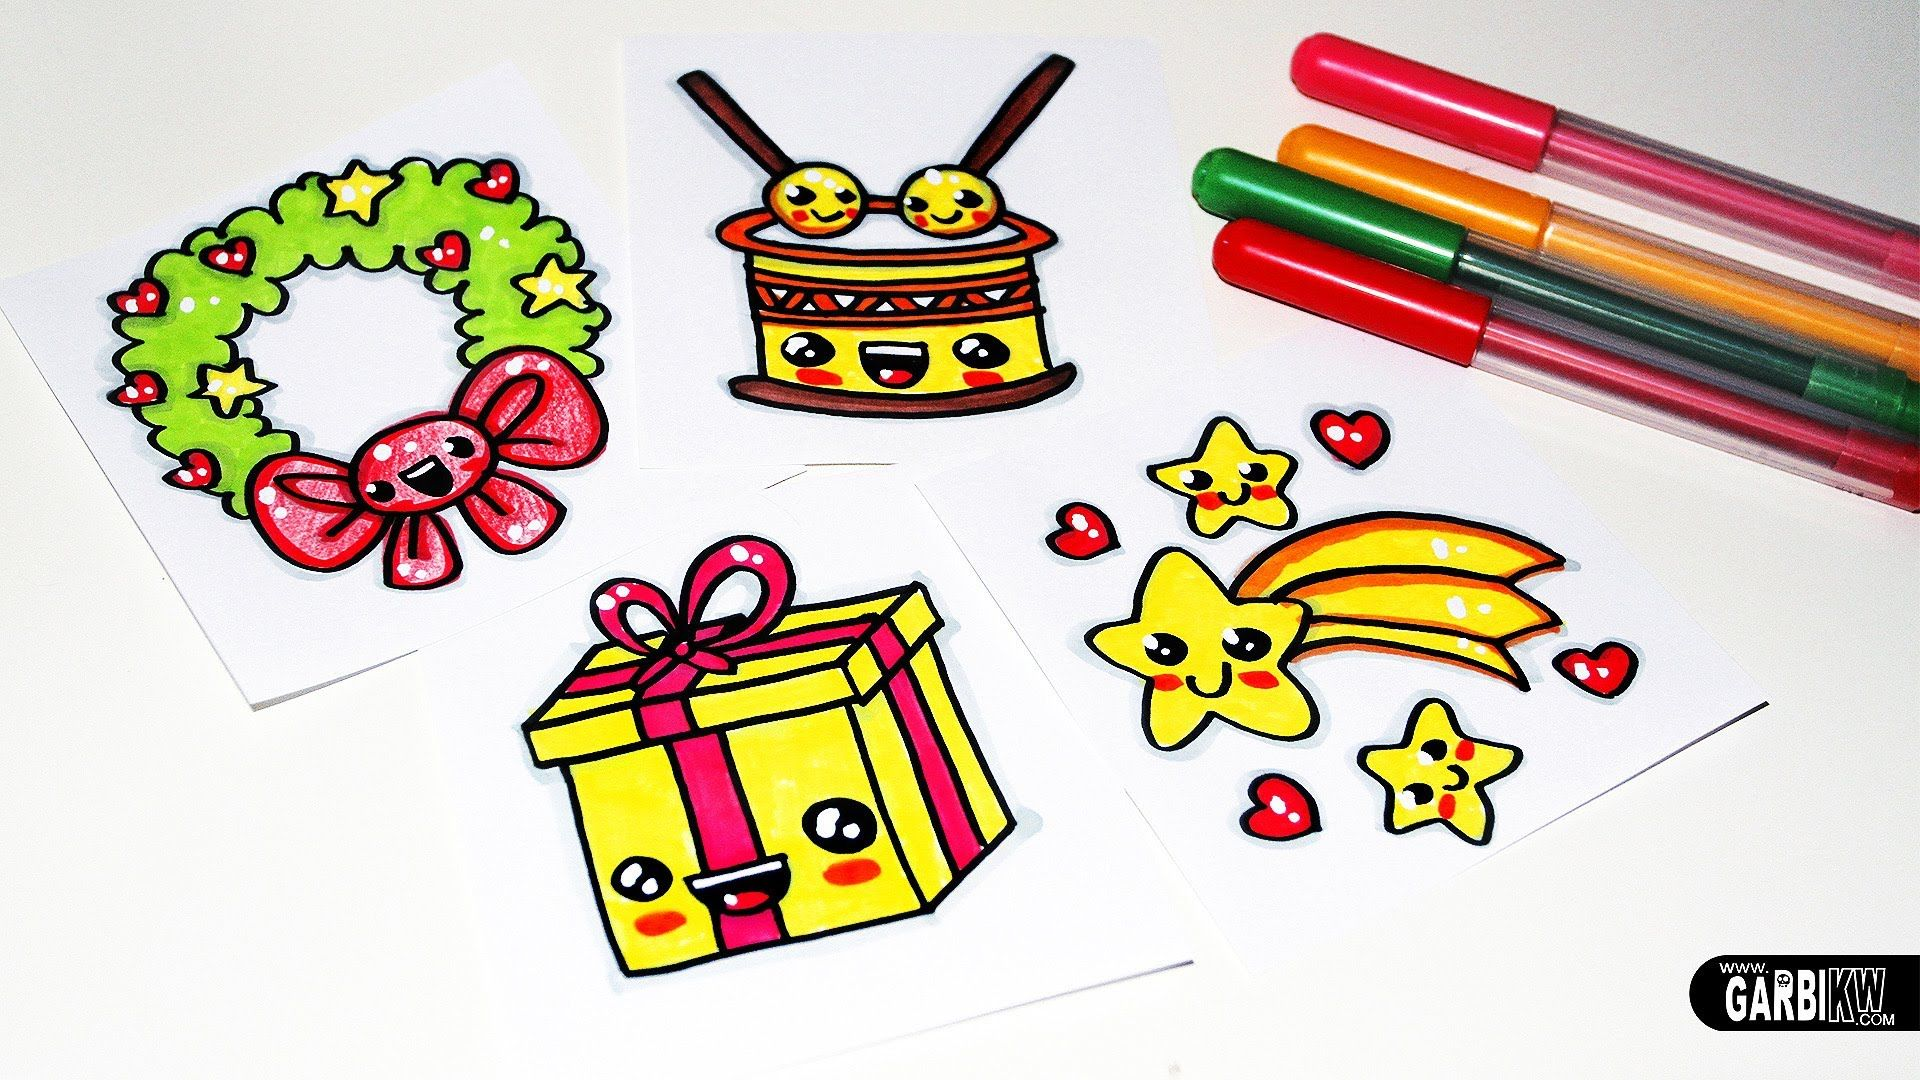 How to Draw Christmas Stuff Easy and Kawaii Drawings by